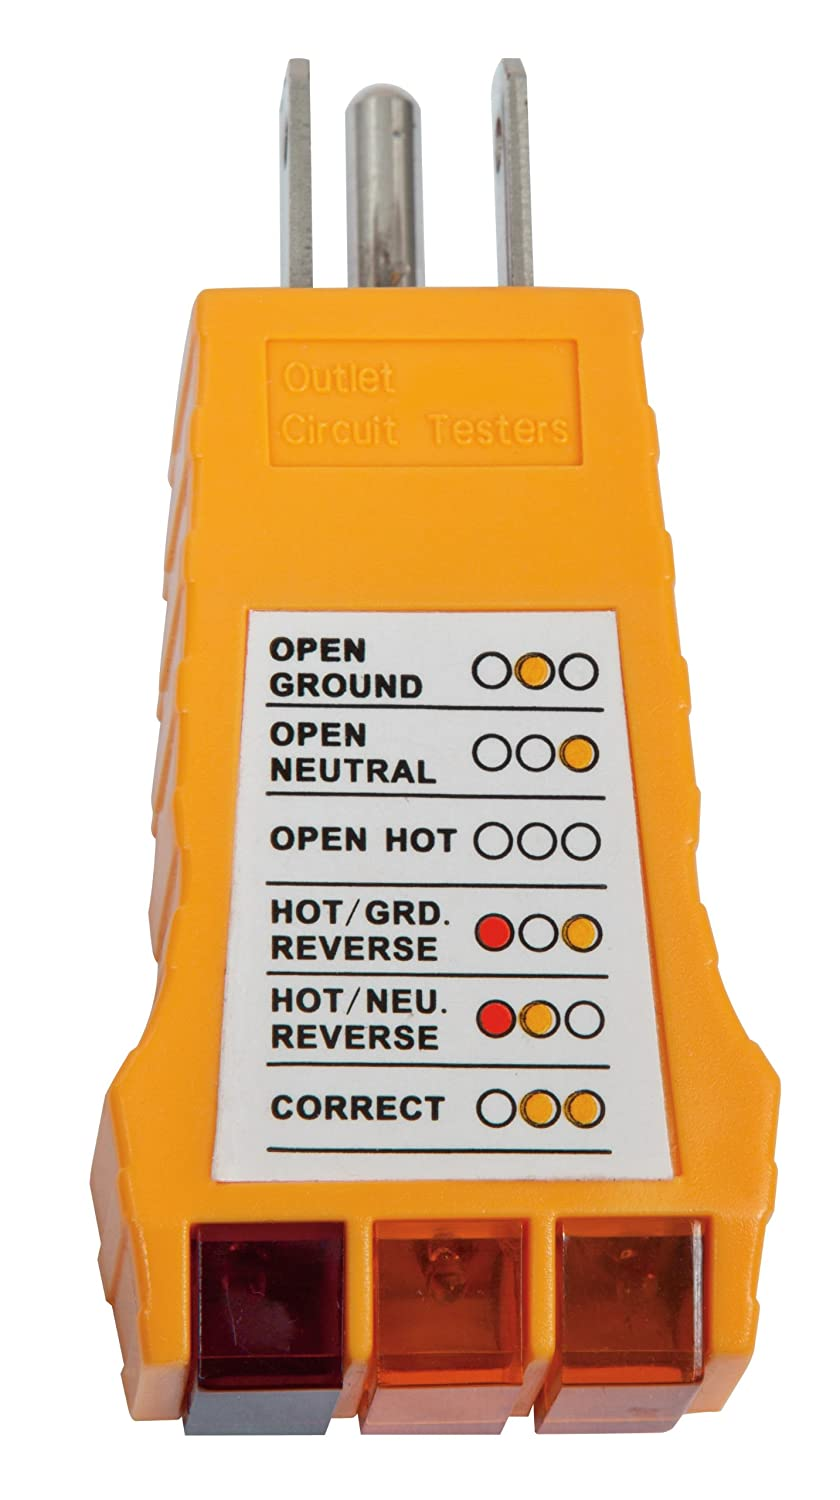 Klein Tools Rt100 Receptacle Tester Circuit Testers Sperry Instruments Breaker Finder Accessory Kit Hd Supply